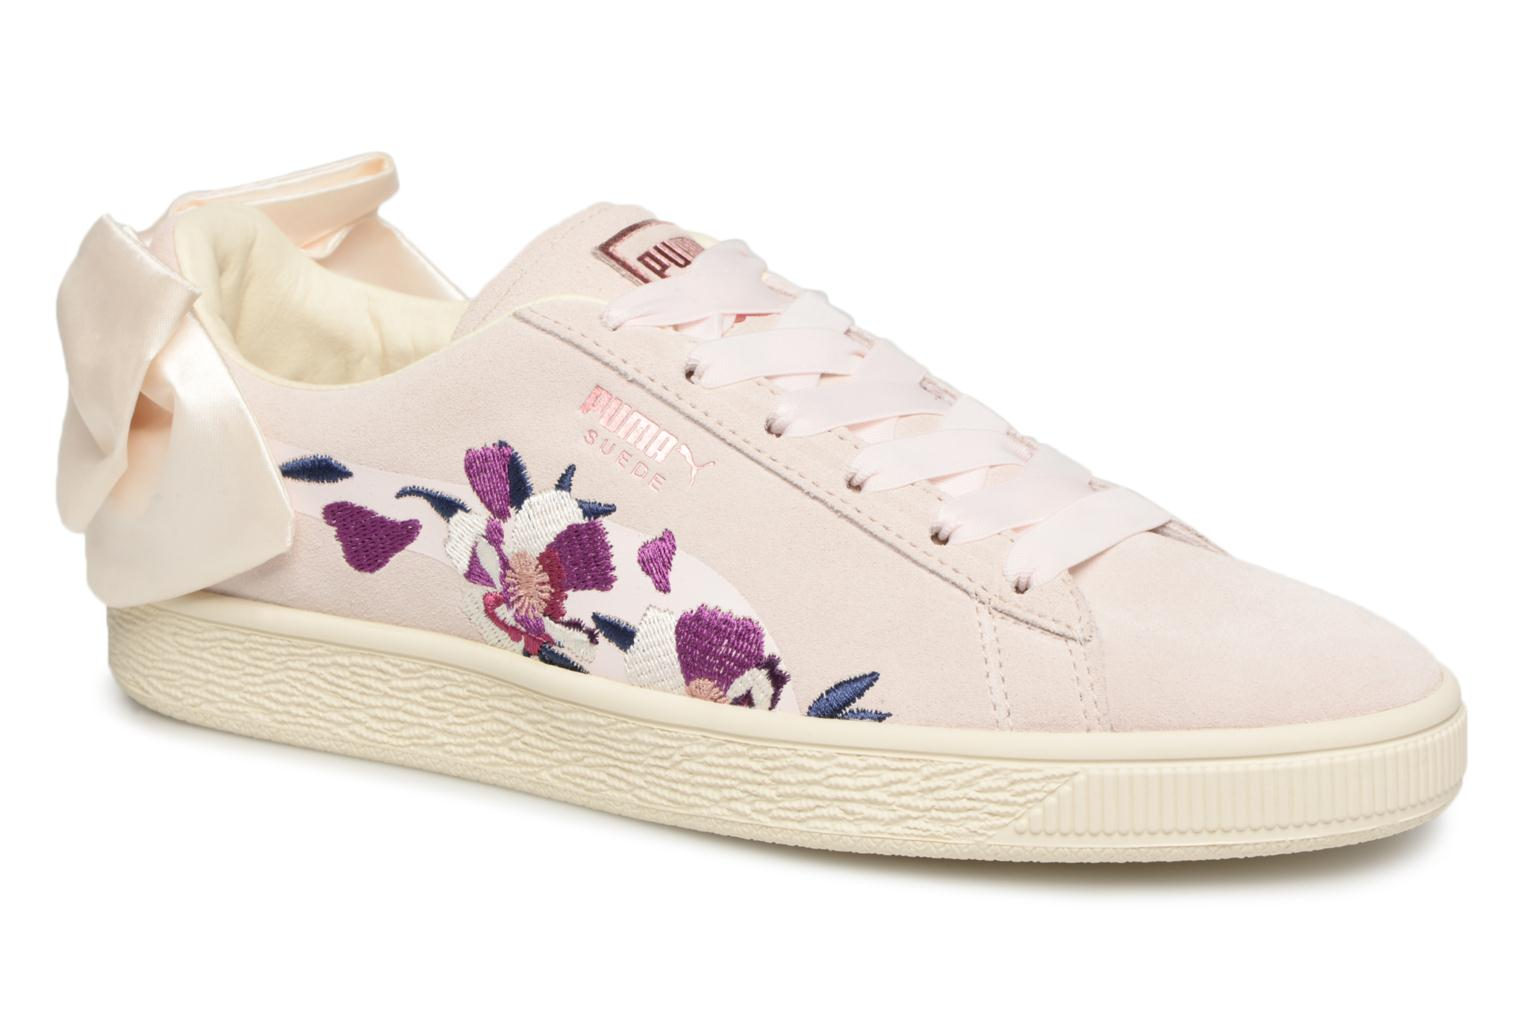 Marques Chaussure femme Puma femme Suede Bow Flowery Mauve Morn-Rose Gold